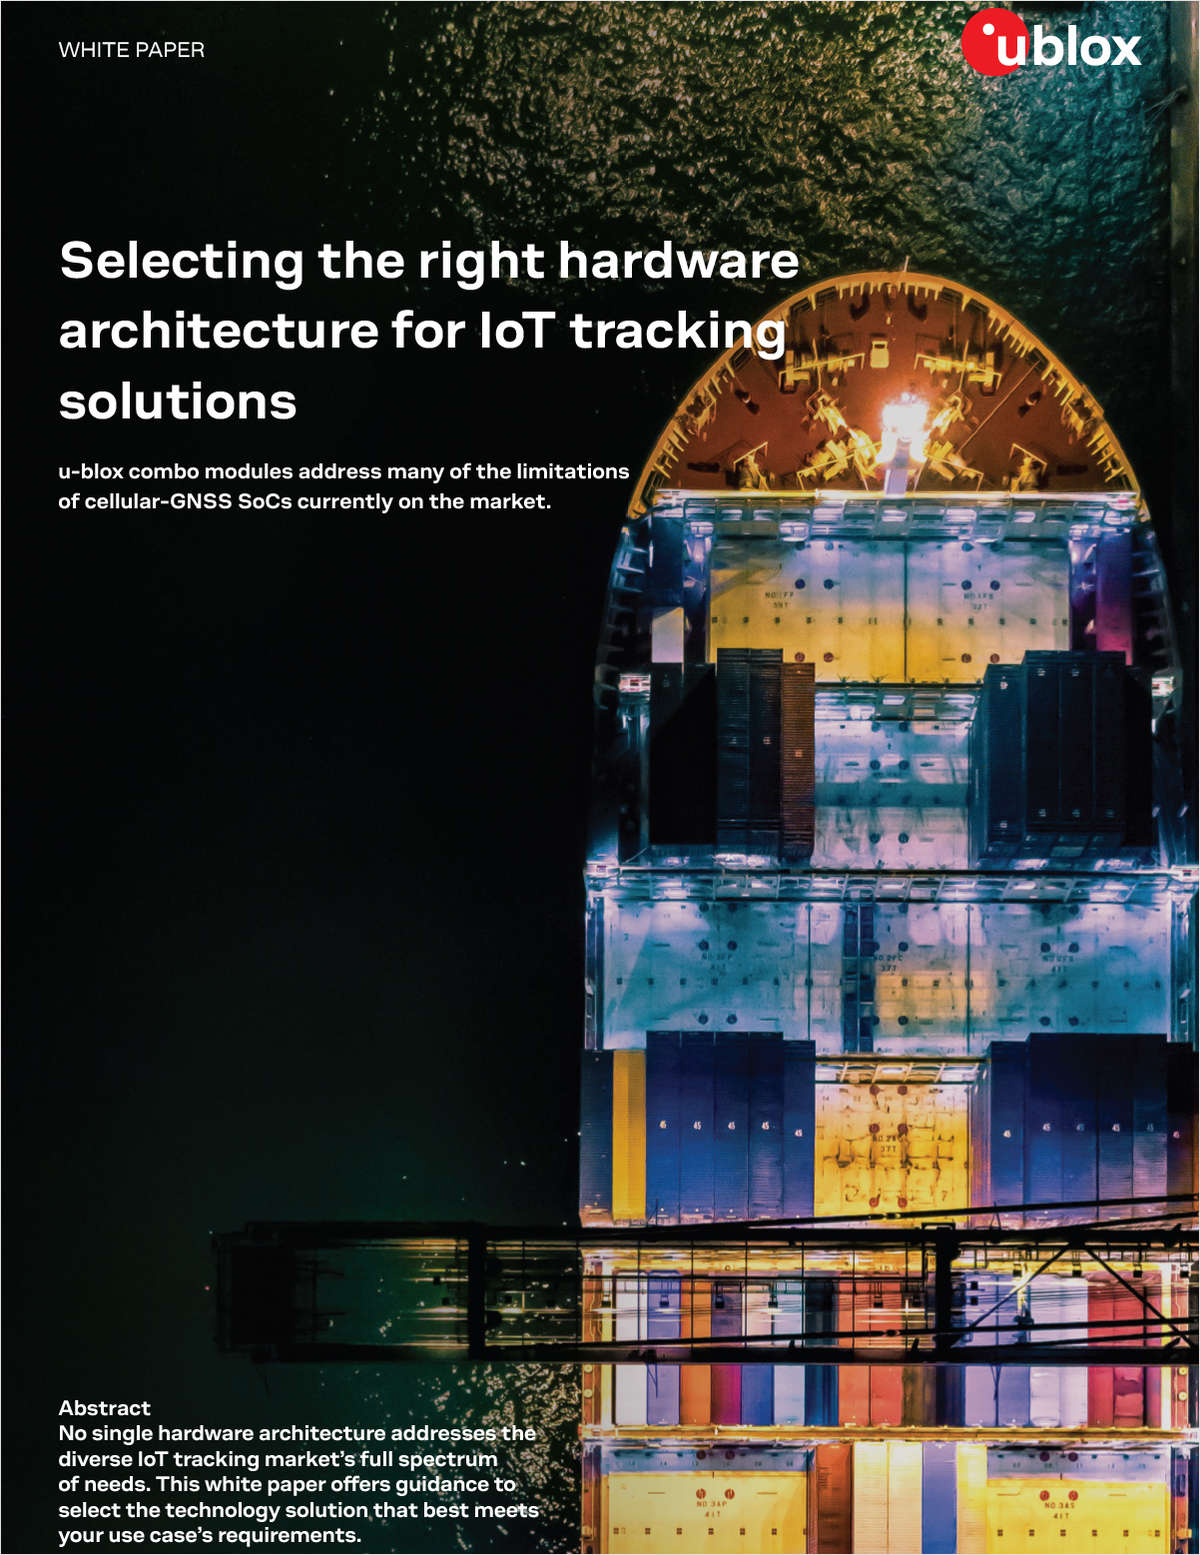 Selecting the right hardware architecture for IoT tracking solutions